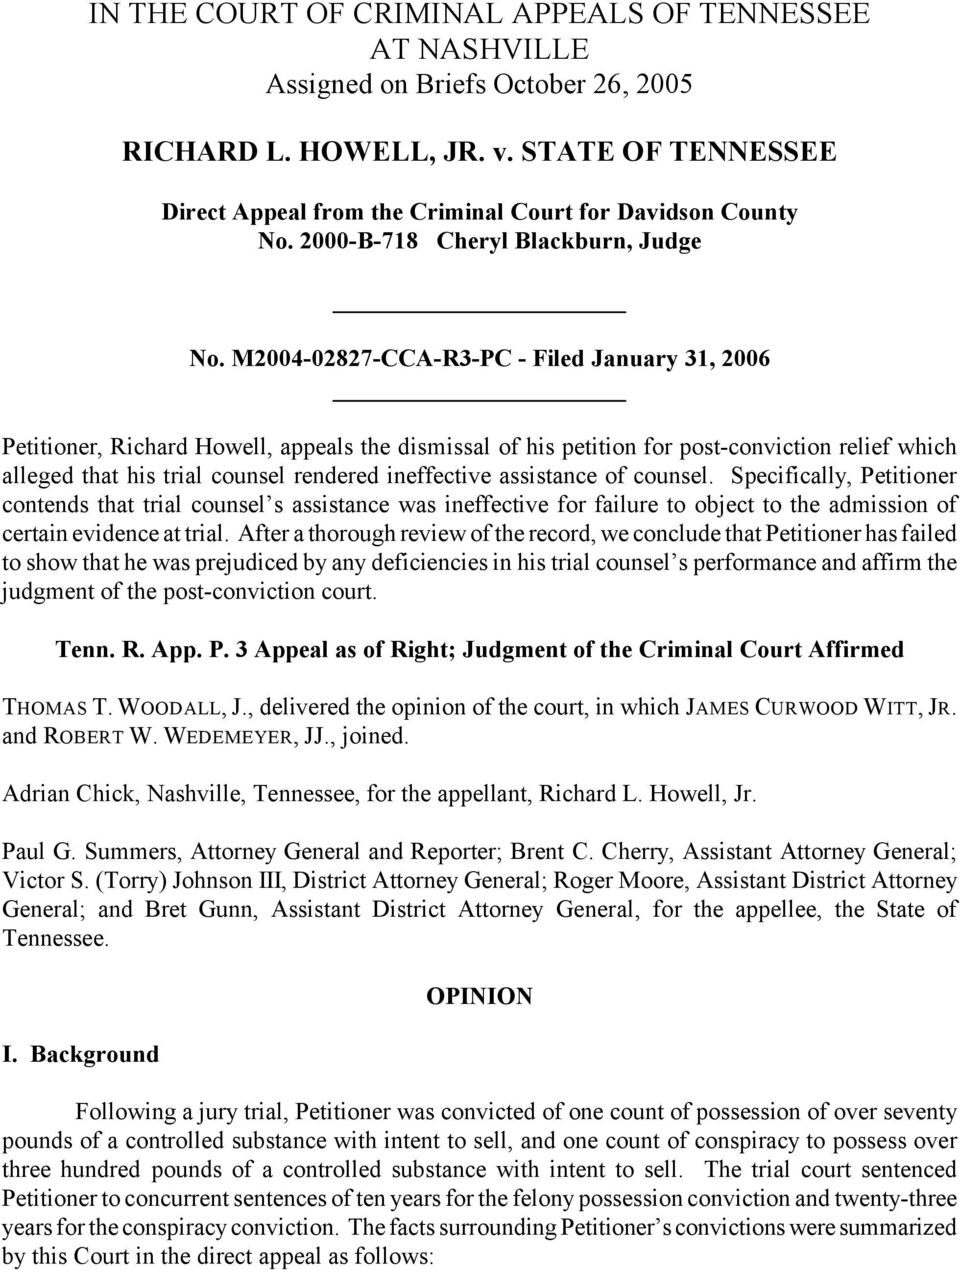 M2004-02827-CCA-R3-PC - Filed January 31, 2006 Petitioner, Richard Howell, appeals the dismissal of his petition for post-conviction relief which alleged that his trial counsel rendered ineffective